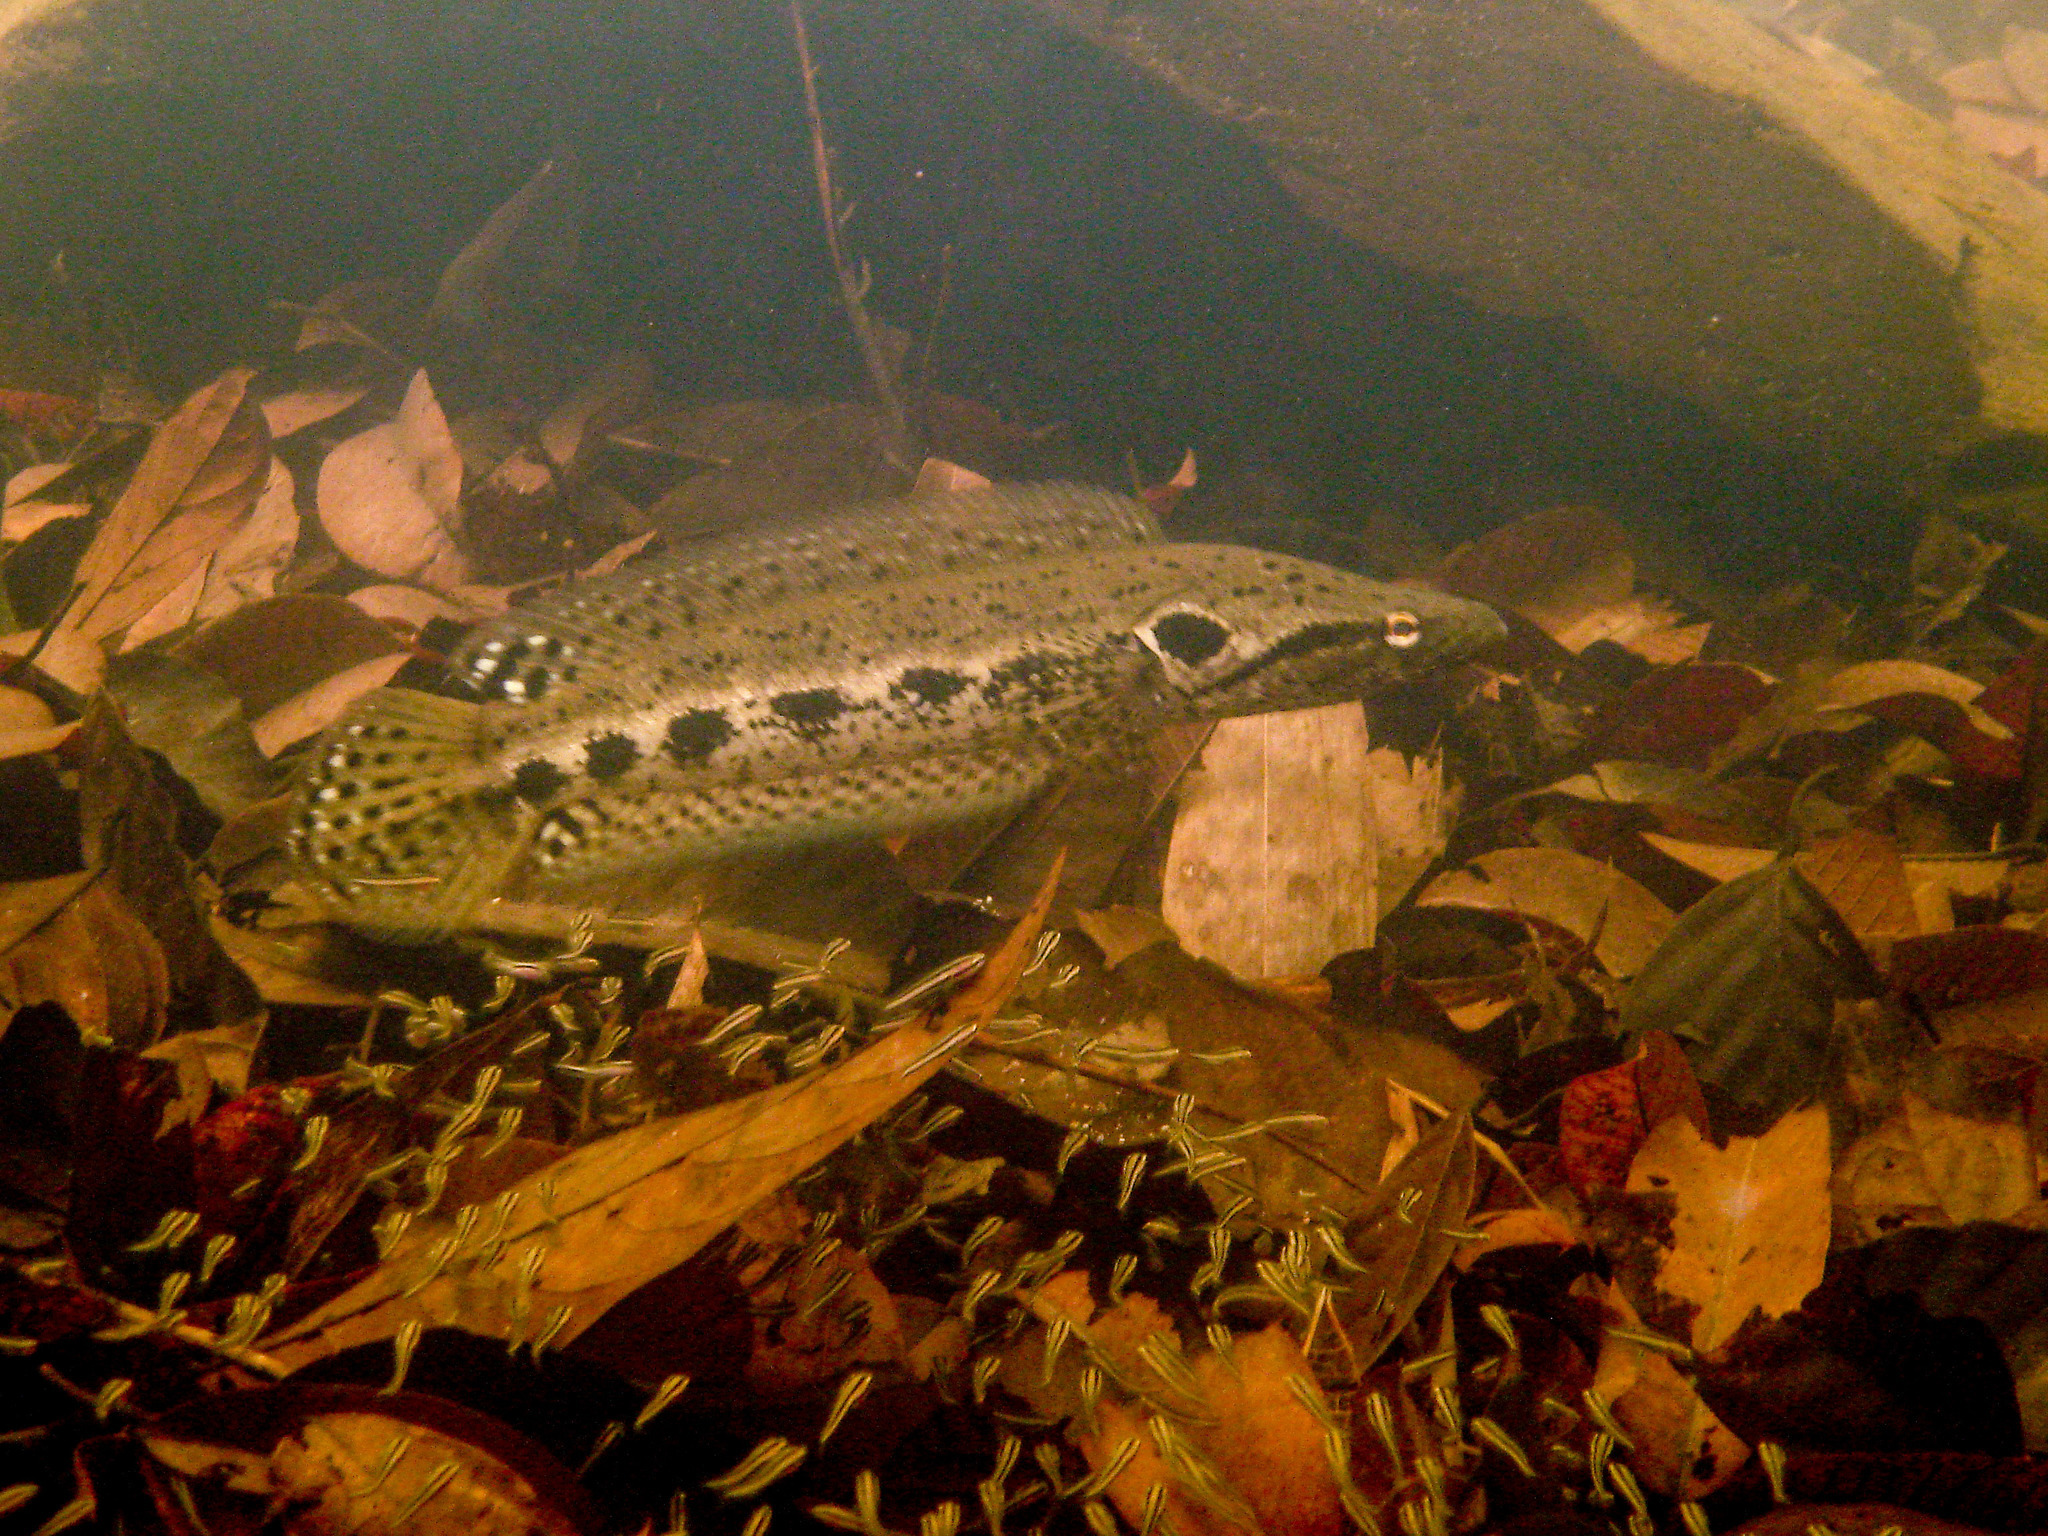 Image of Forest Snakehead